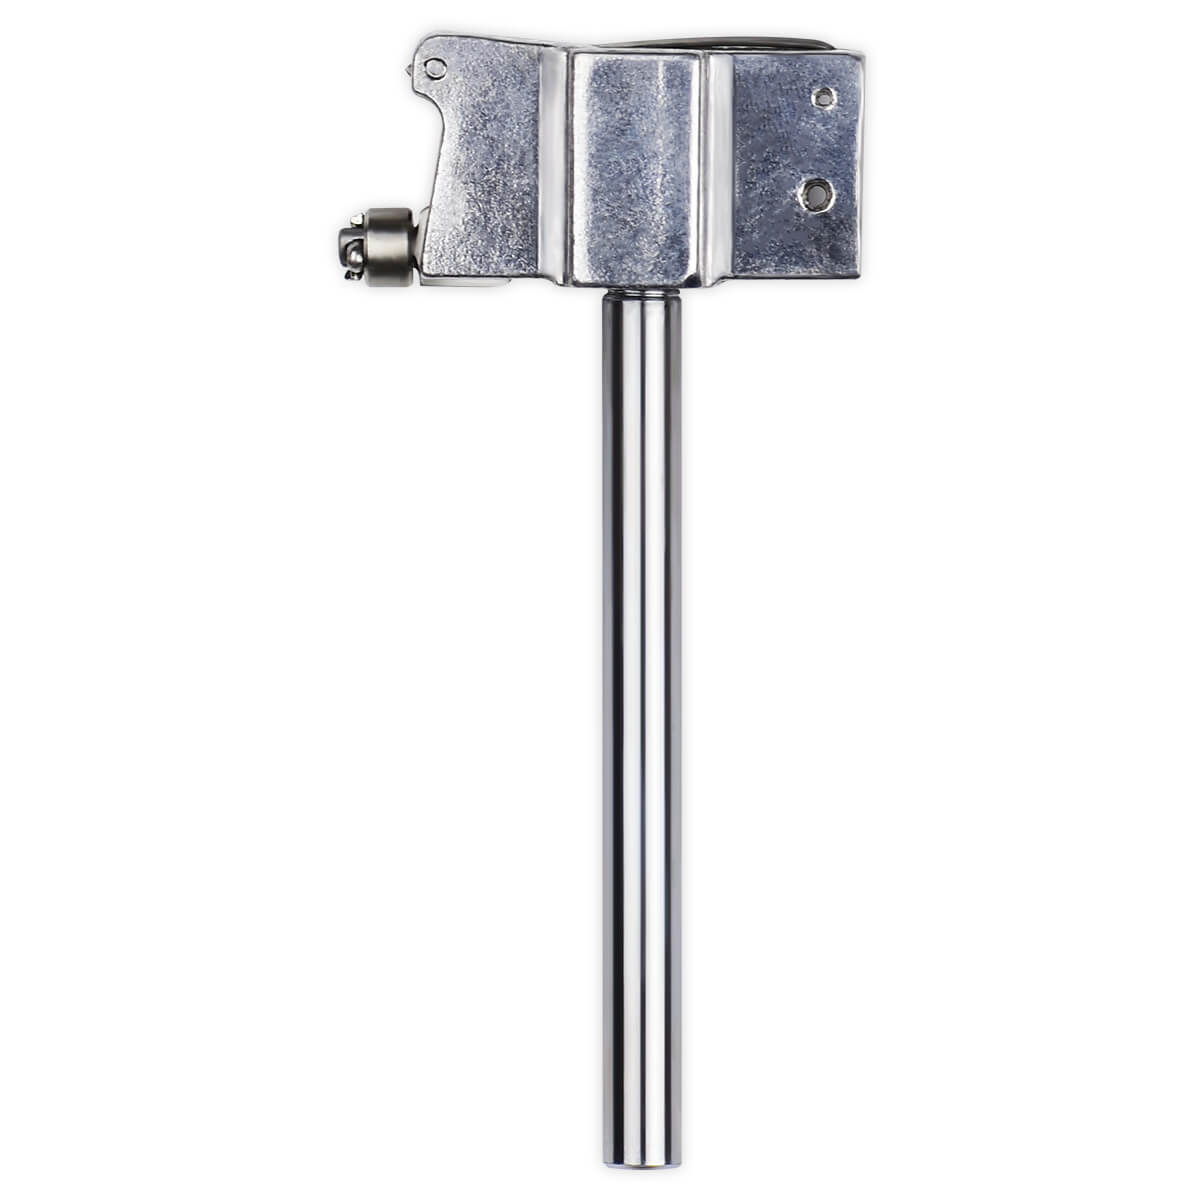 LEVEL5 Drive Dog Assembly for Automatic Drywall Taper | 4-818